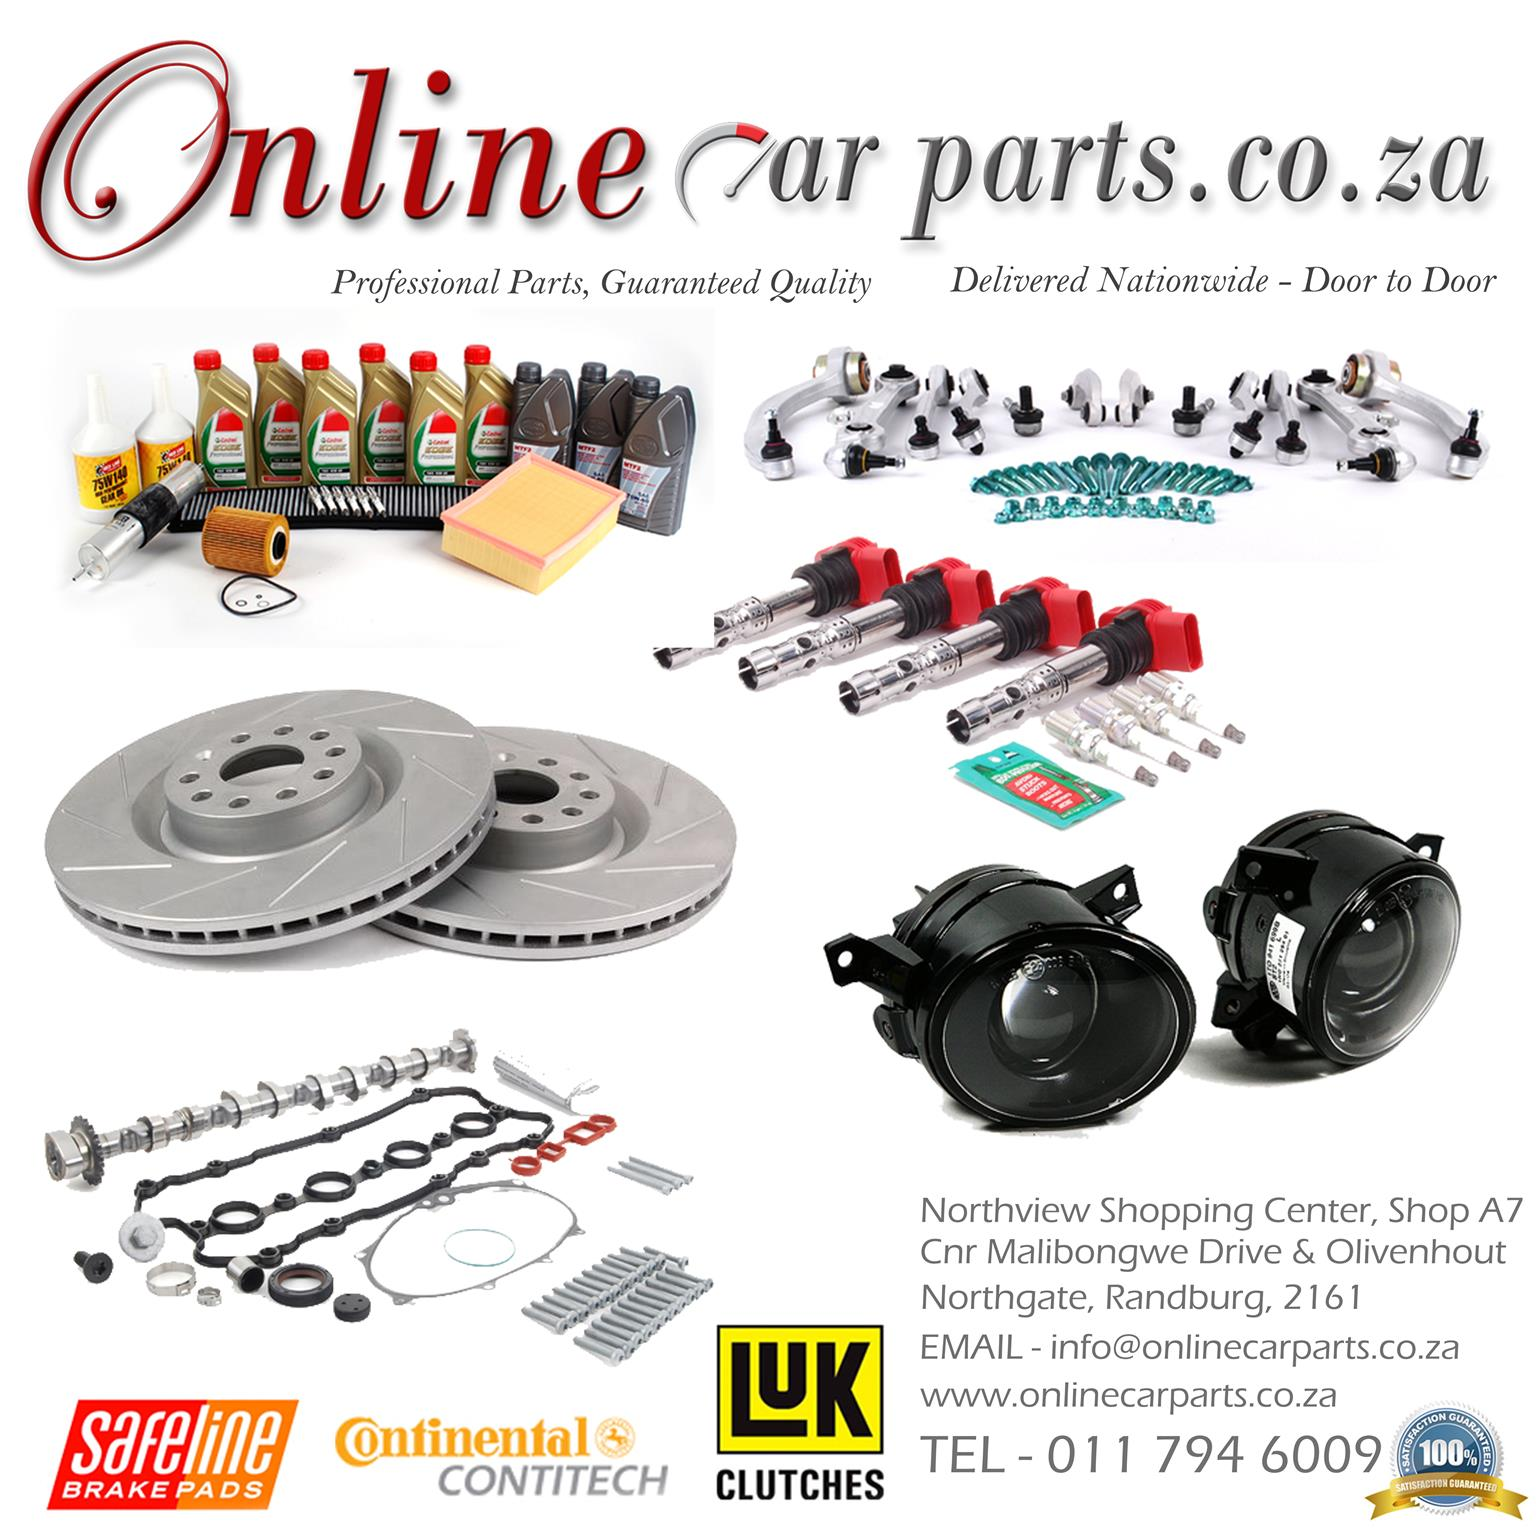 Find Online Car Parts's adverts listed on Junk Mail